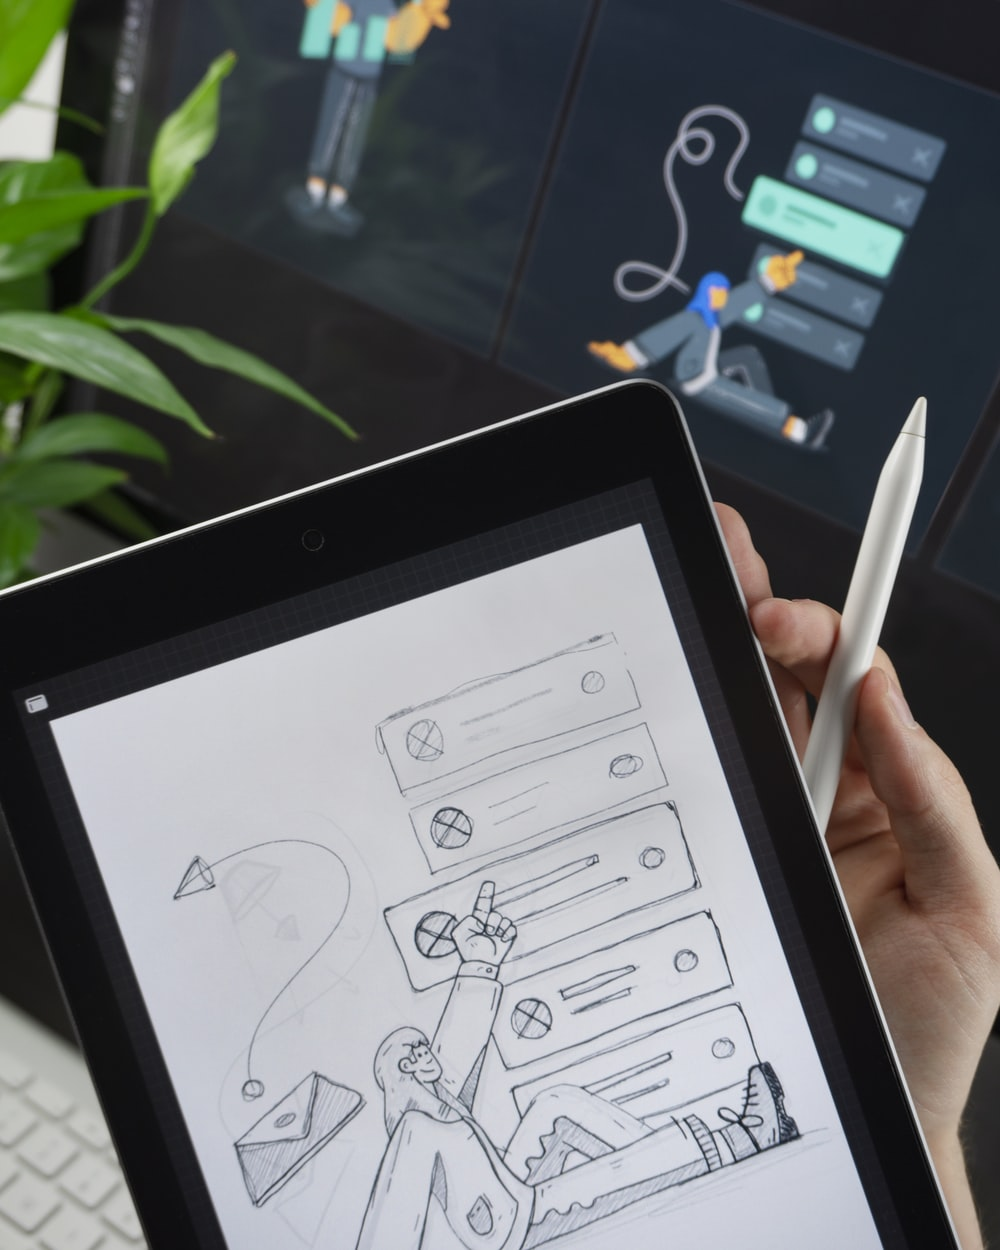 person drawing sketch on tablet